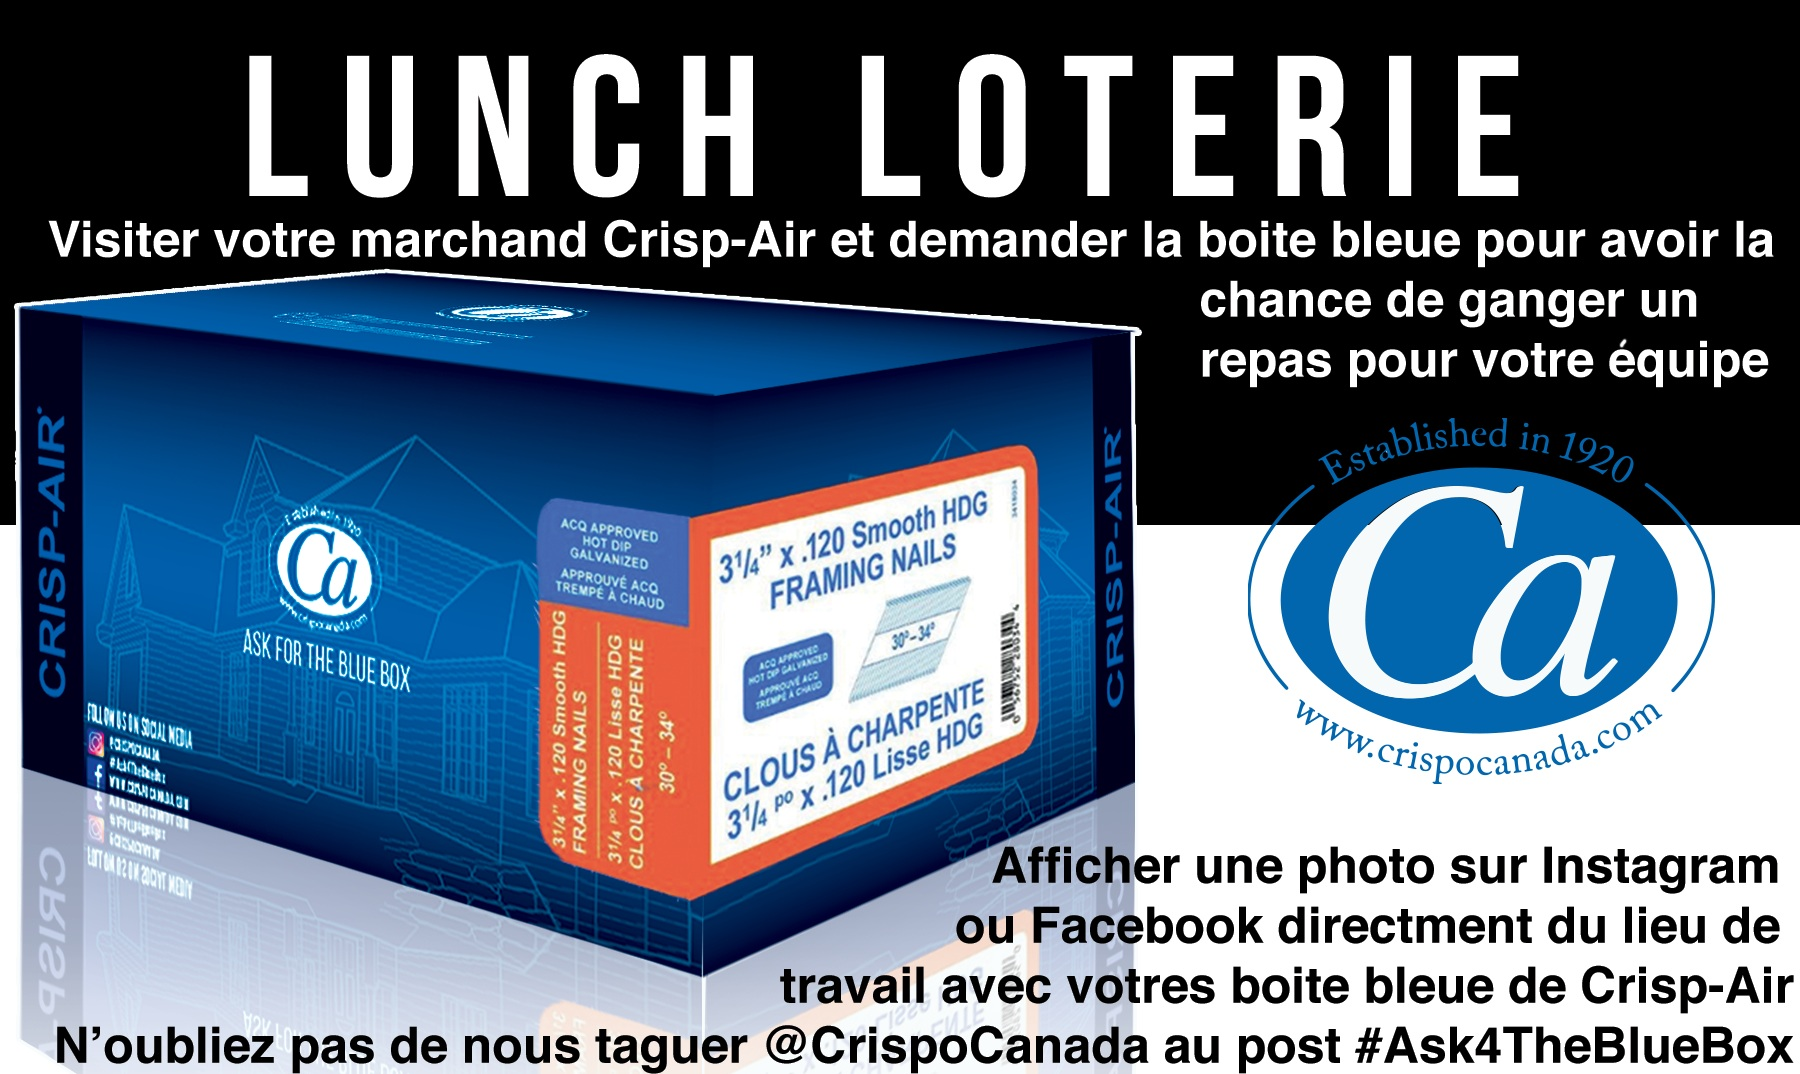 LunchLottery---FrenchPostCard+copy.jpg